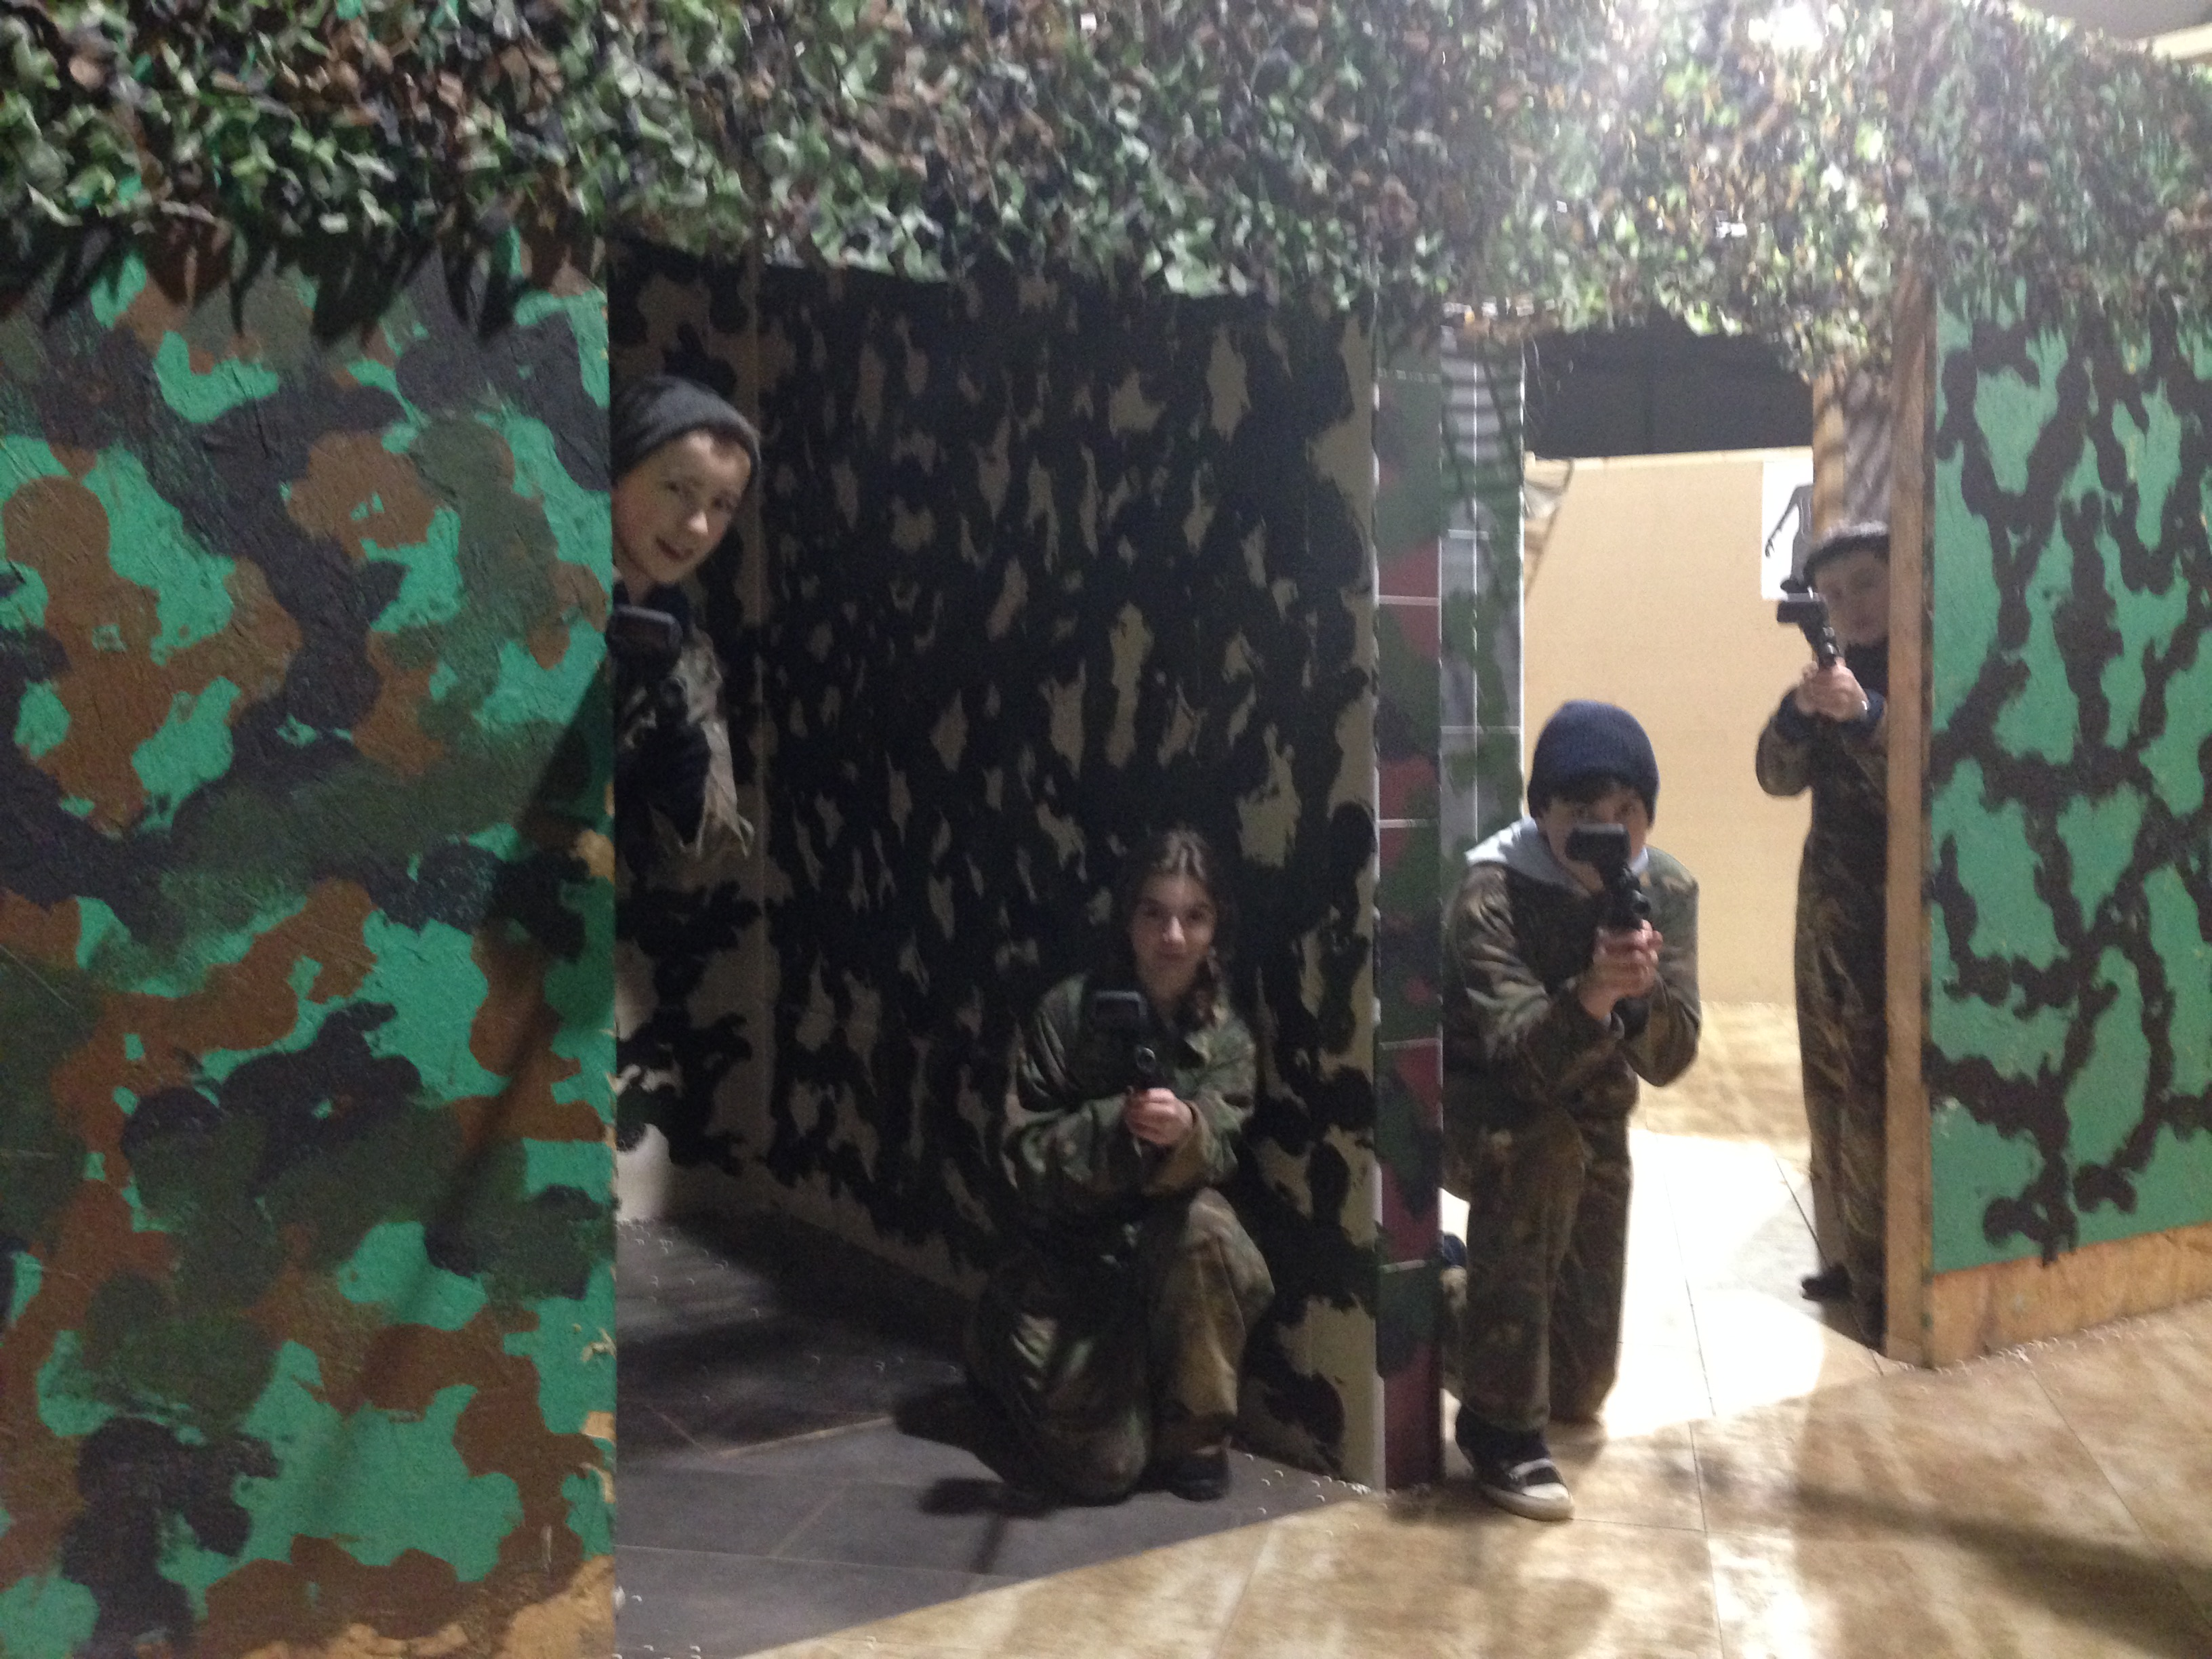 Indoor Laser Tag Combat Session